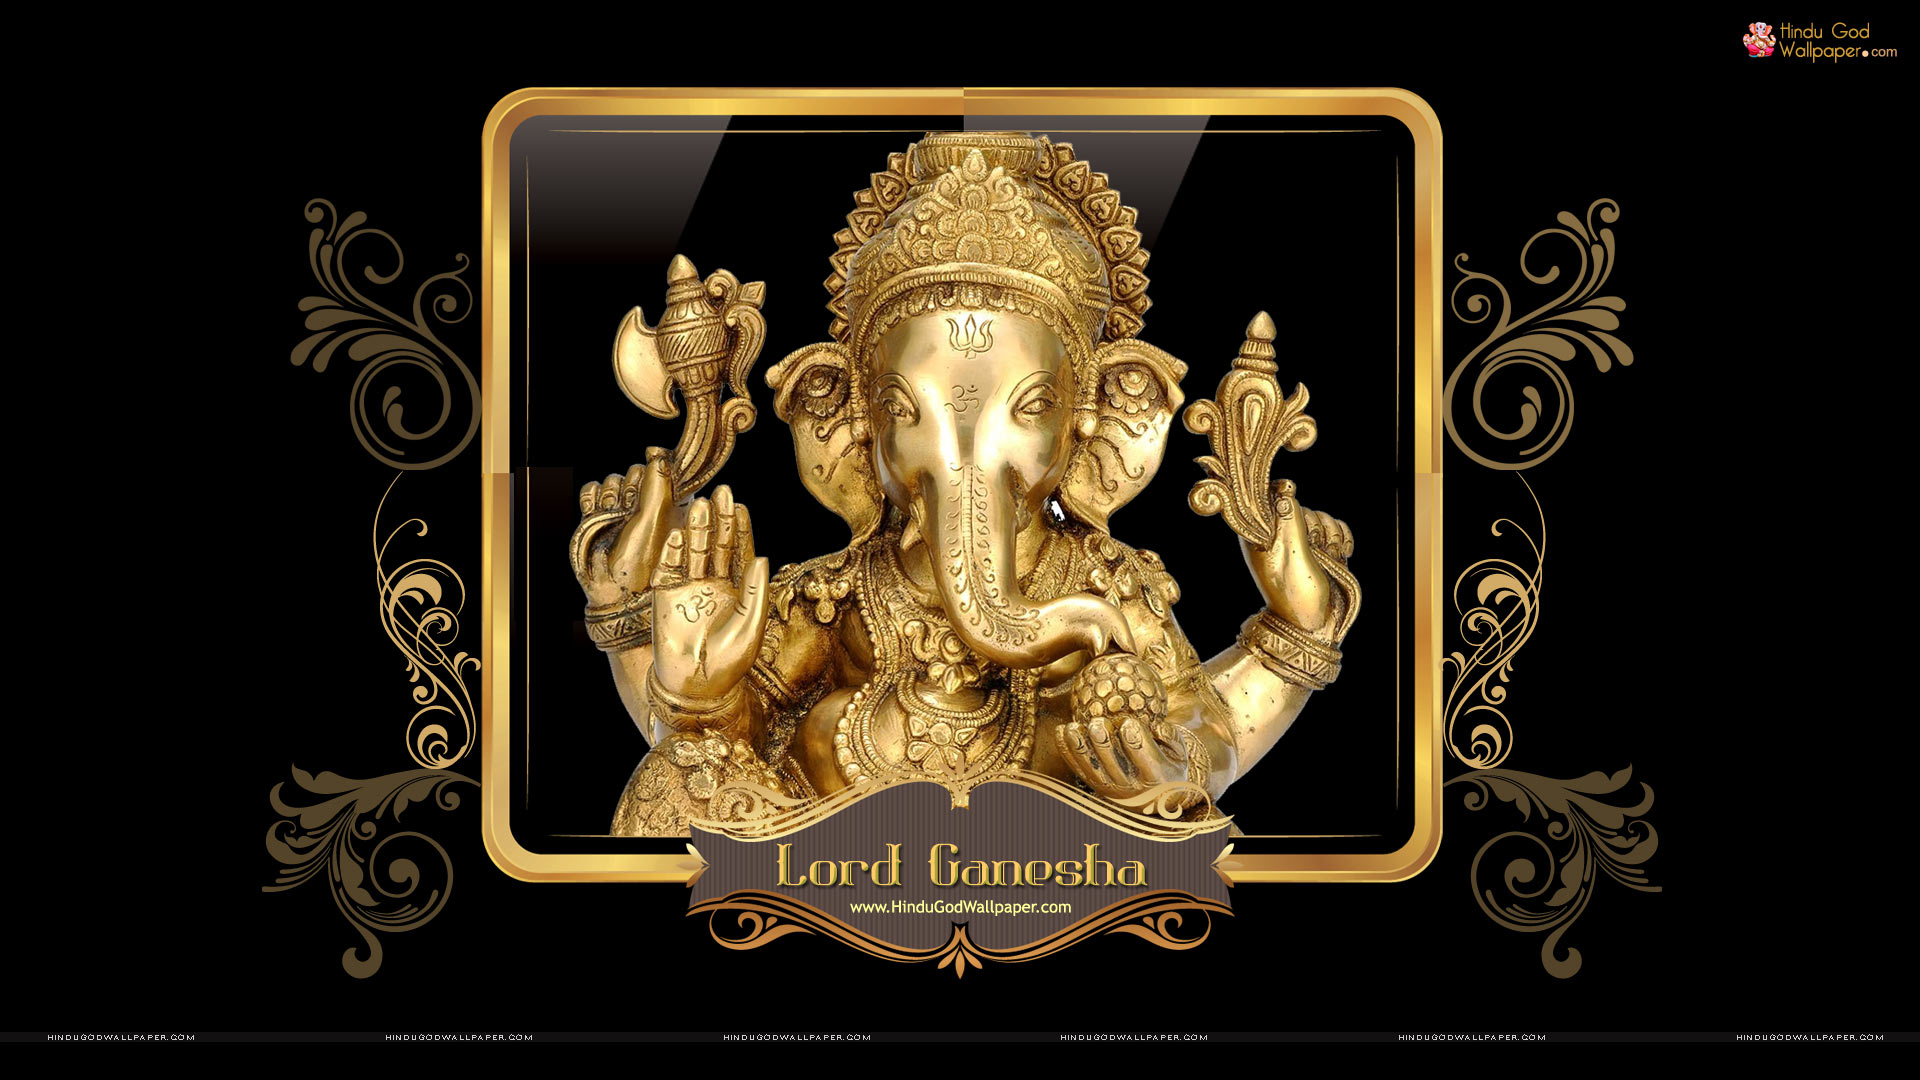 lord ganesha wallpaper 1080p hd high resolution download